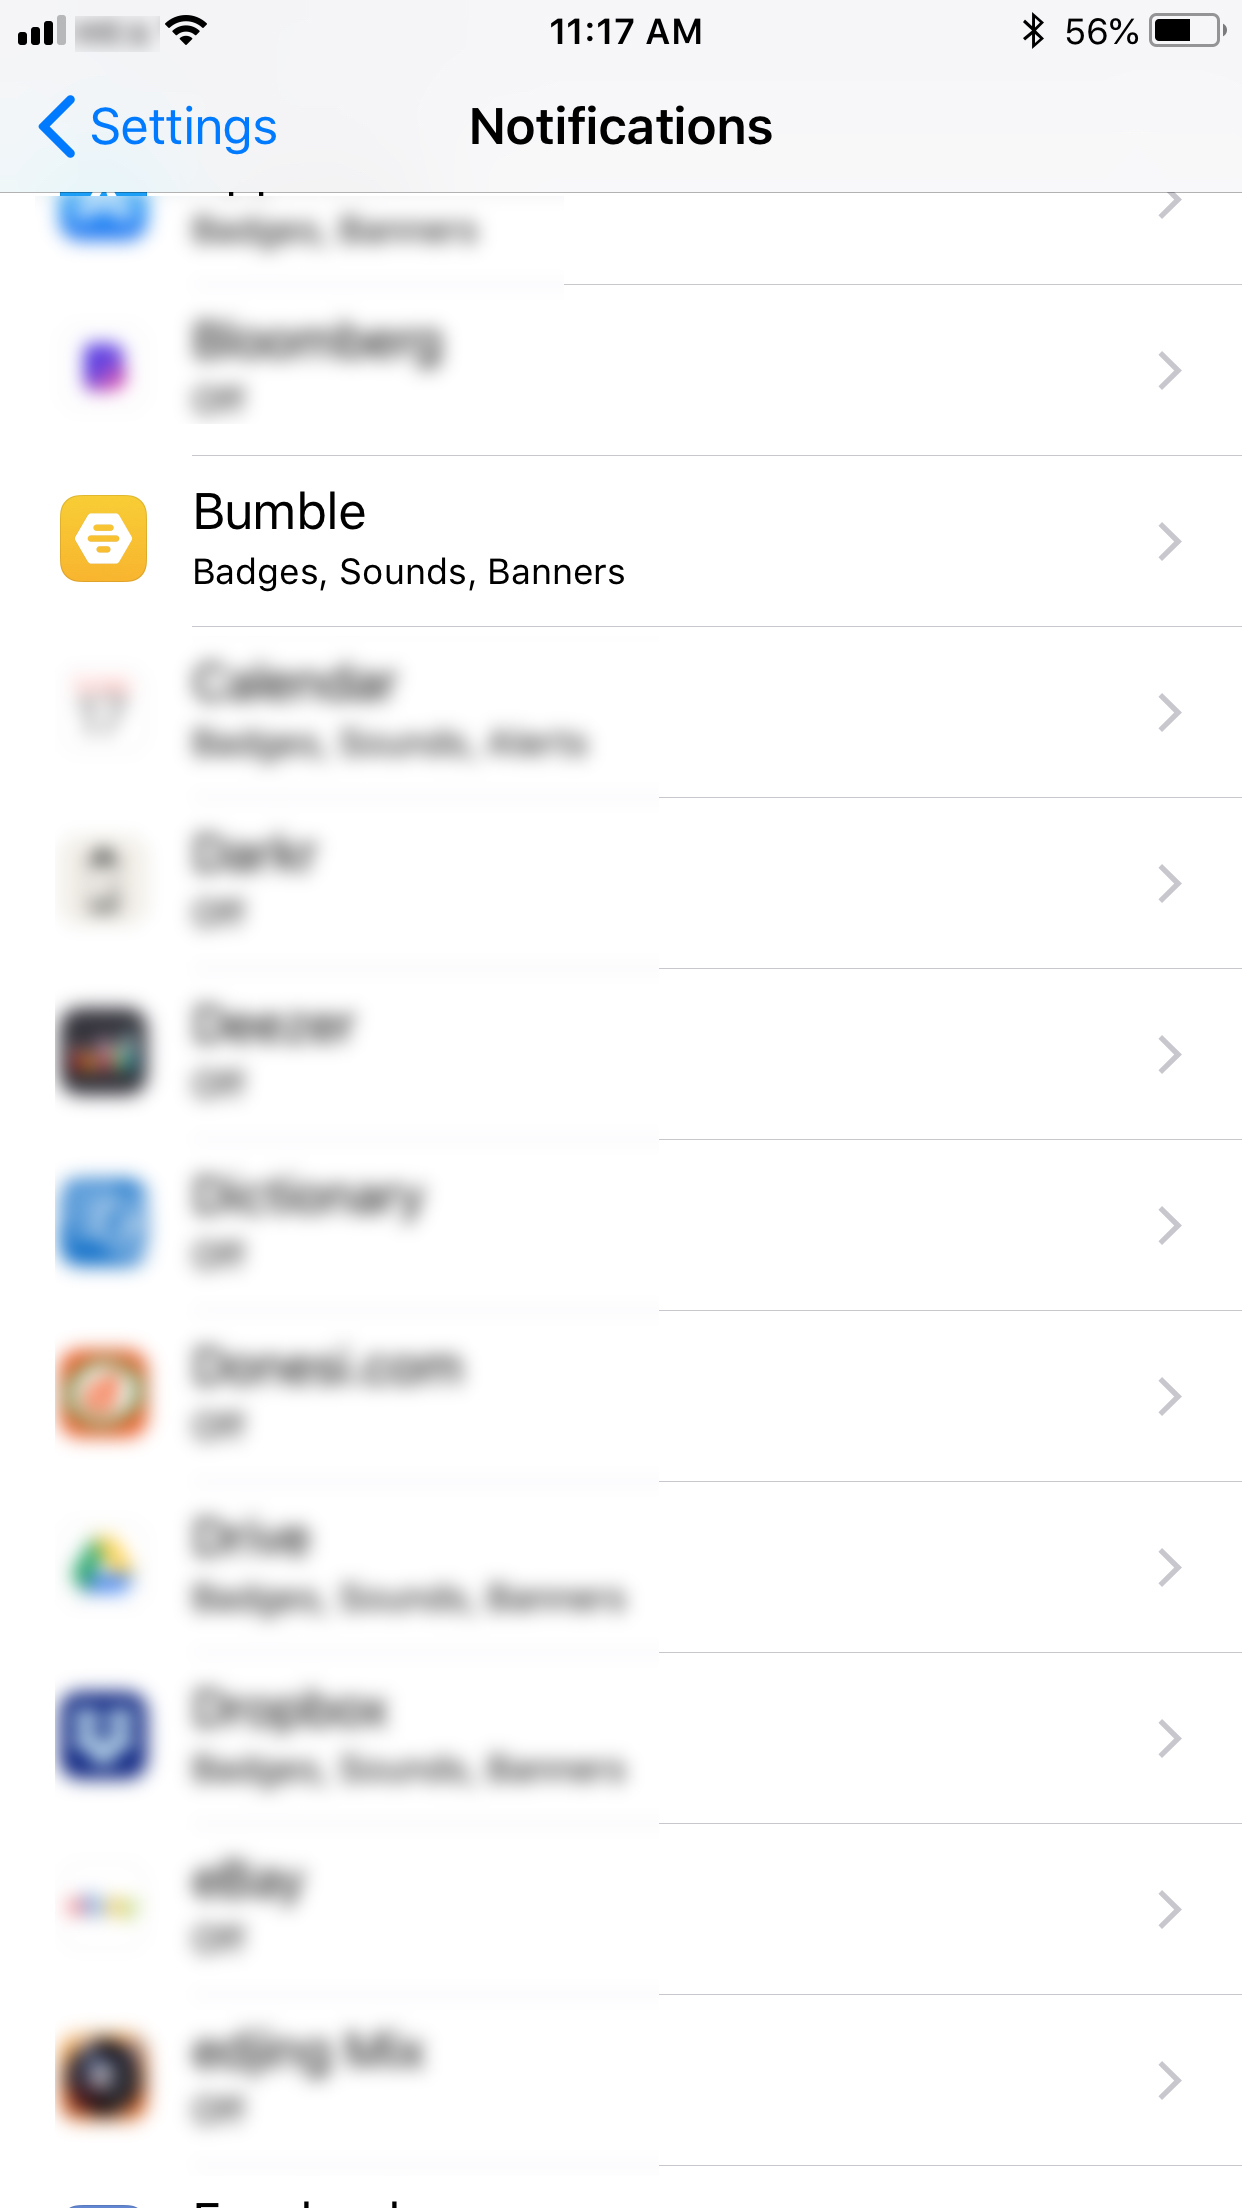 How to unsubscribe from bumble on iphone